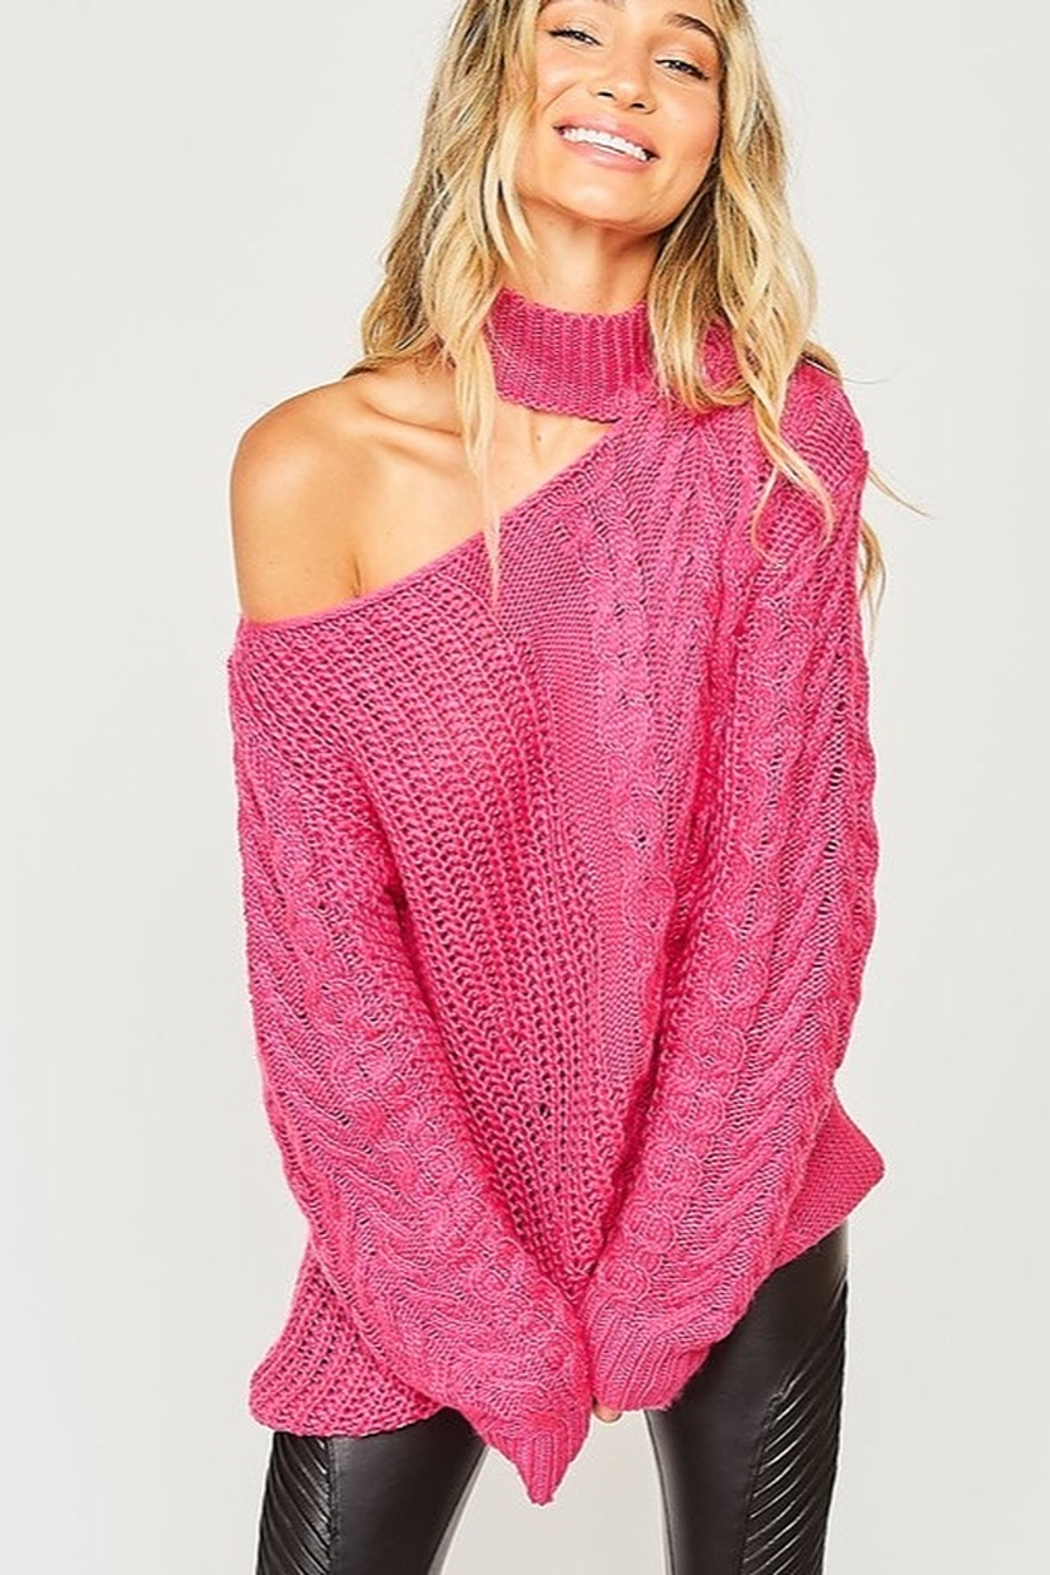 Peach Love California One Shoulder Chunky Cable Knit Sweater - Main Image